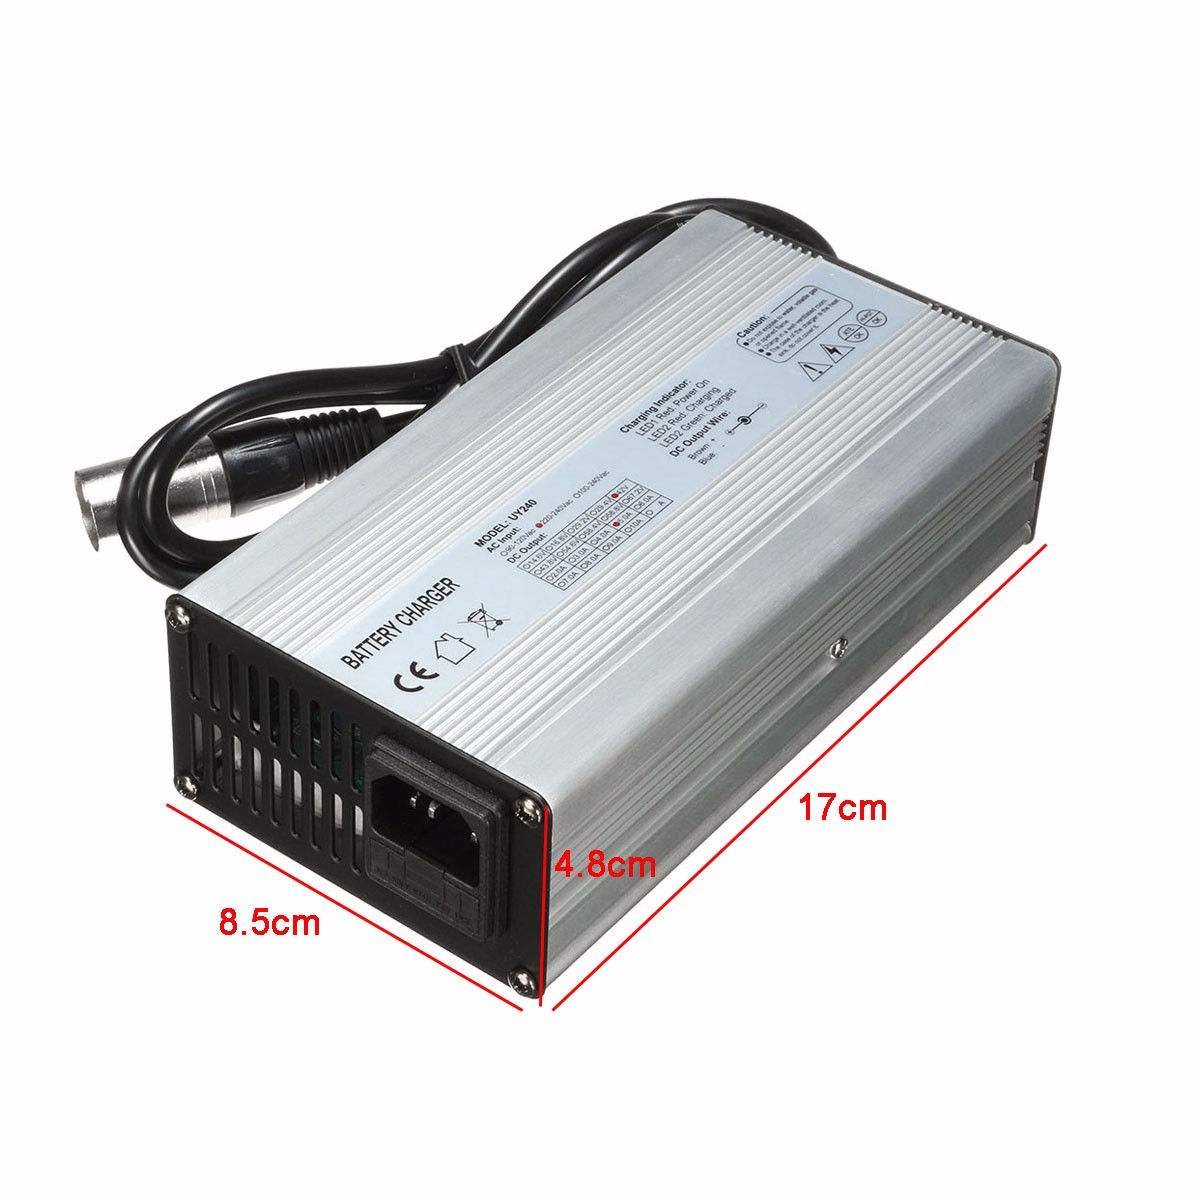 36V 37V 42V 45V 5A Battery Charger For 10s 10x 3.6V/3.7V Lithium Li-ion Battery